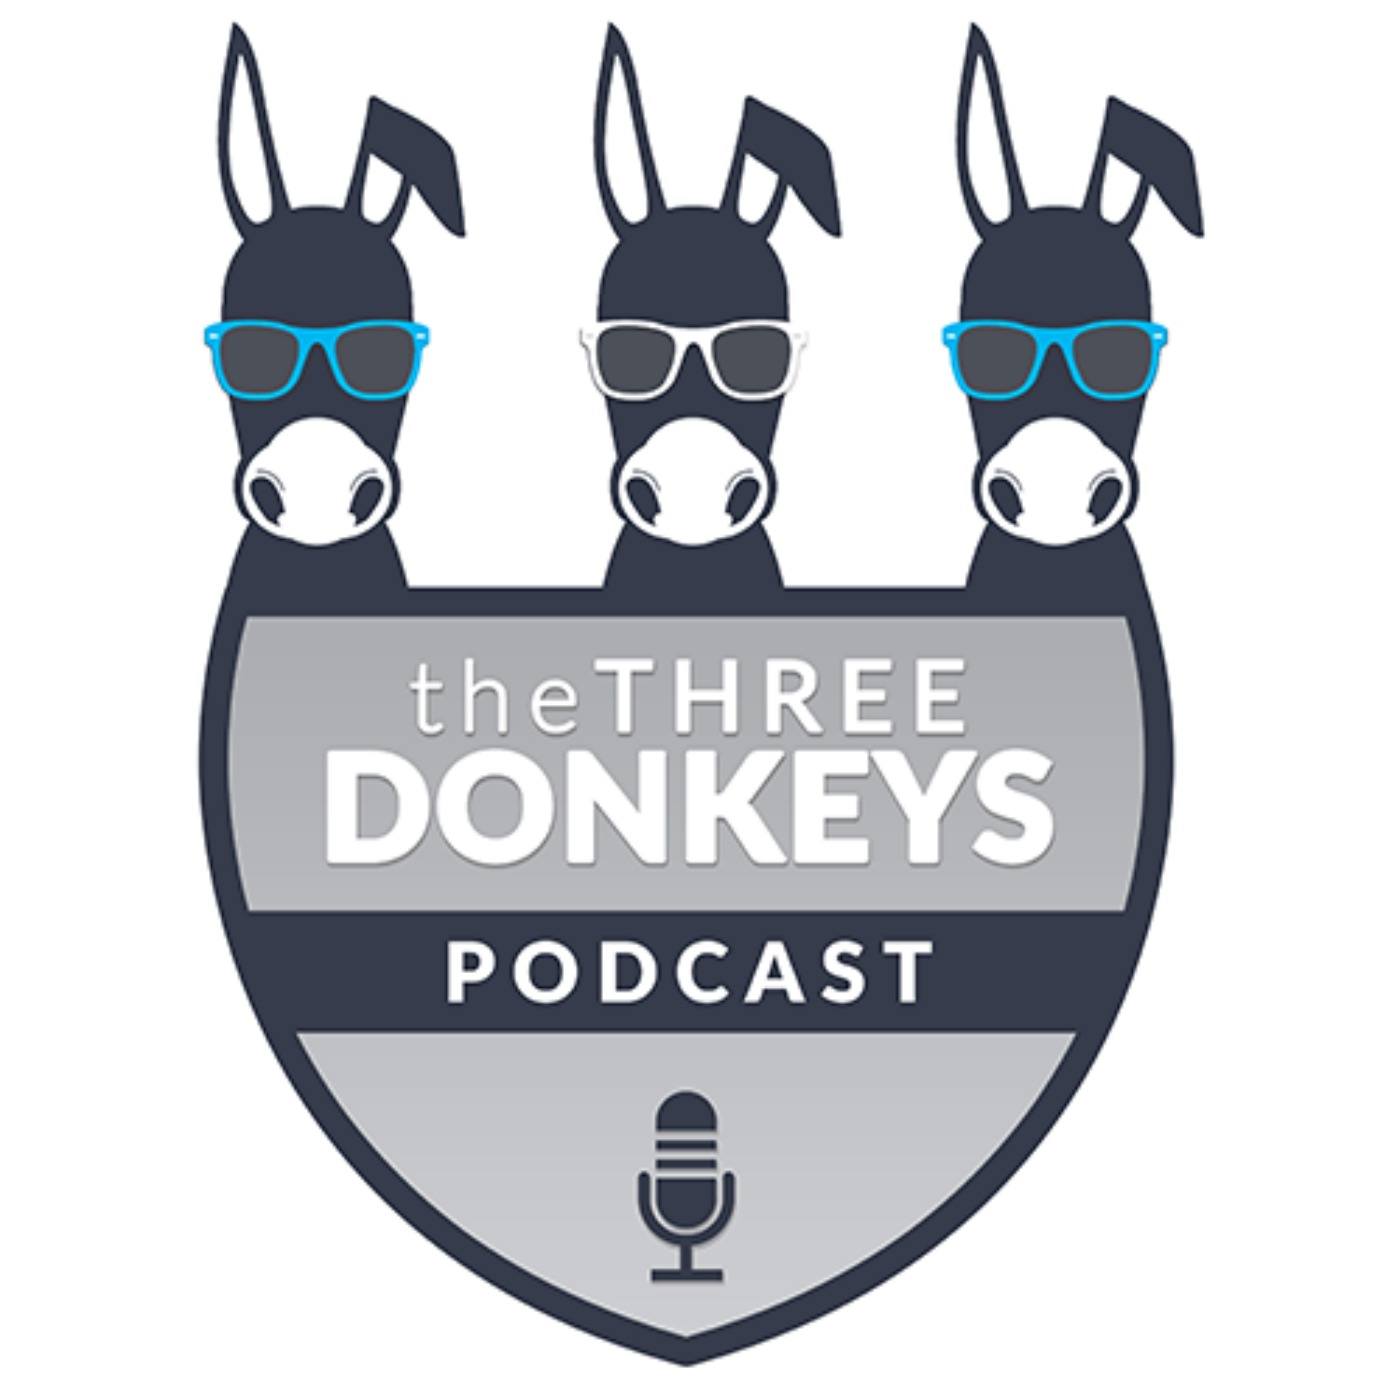 The Three Donkeys Podcast, Episode 45: Lodden, Lodden And More Lodden